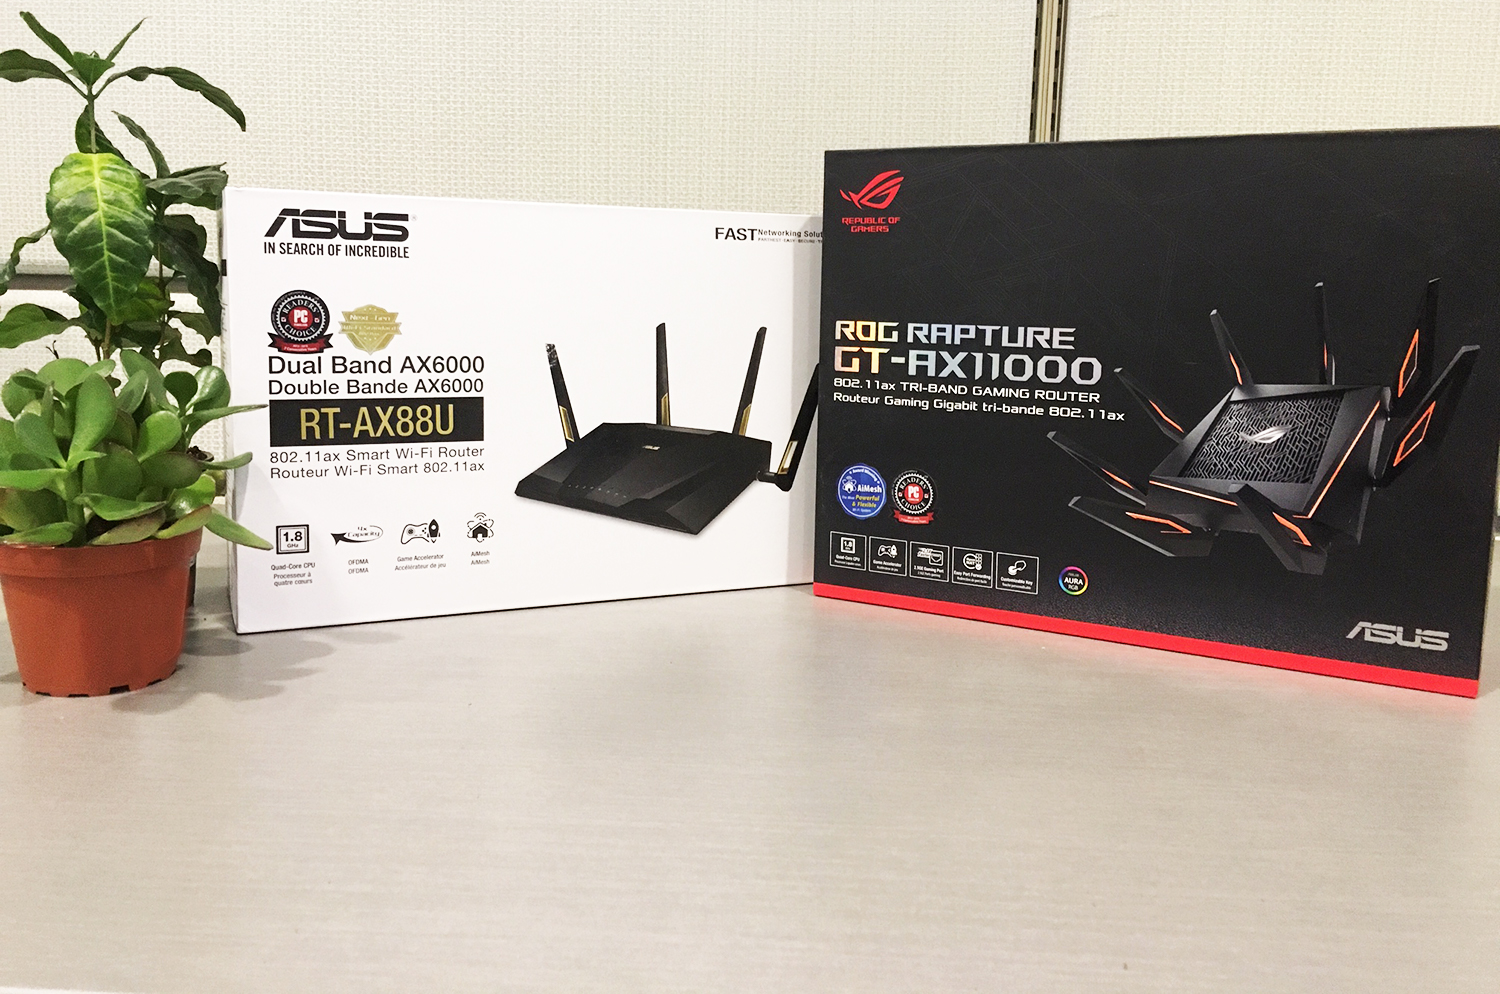 ASUS wi-fi 6 routers 802.11ax wireless standard